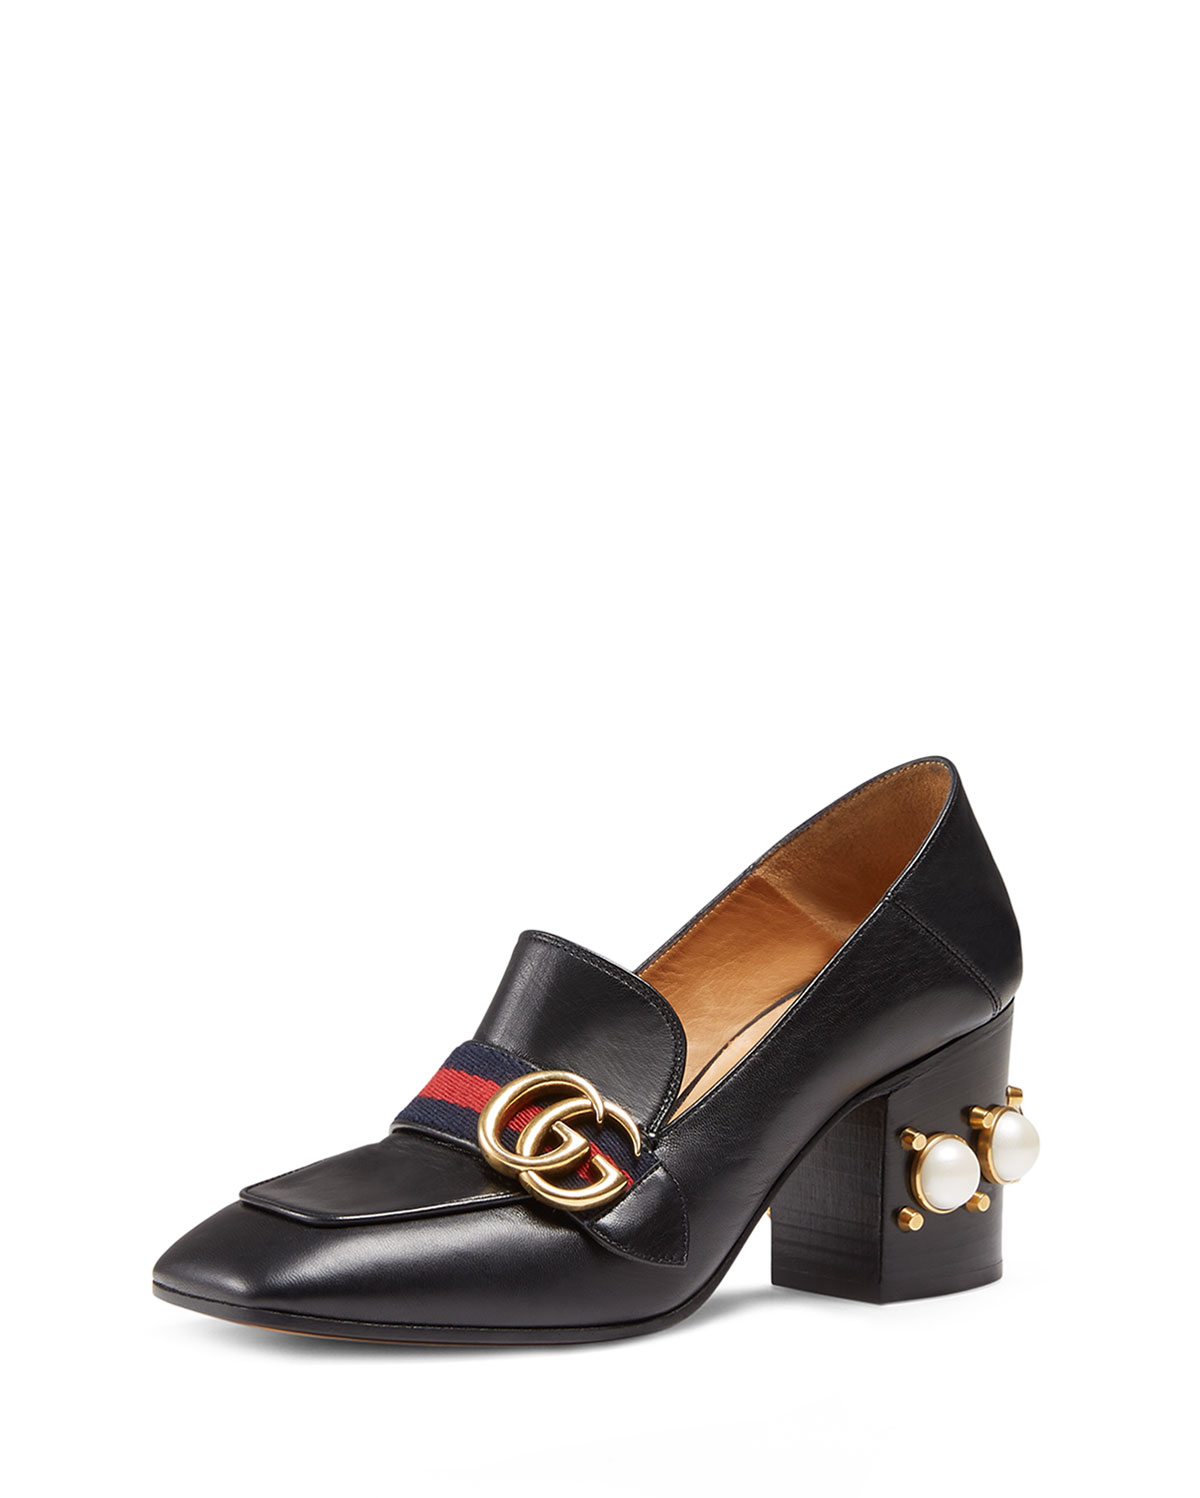 acd7800a0142 Gucci Leather Mid Heel Loafer